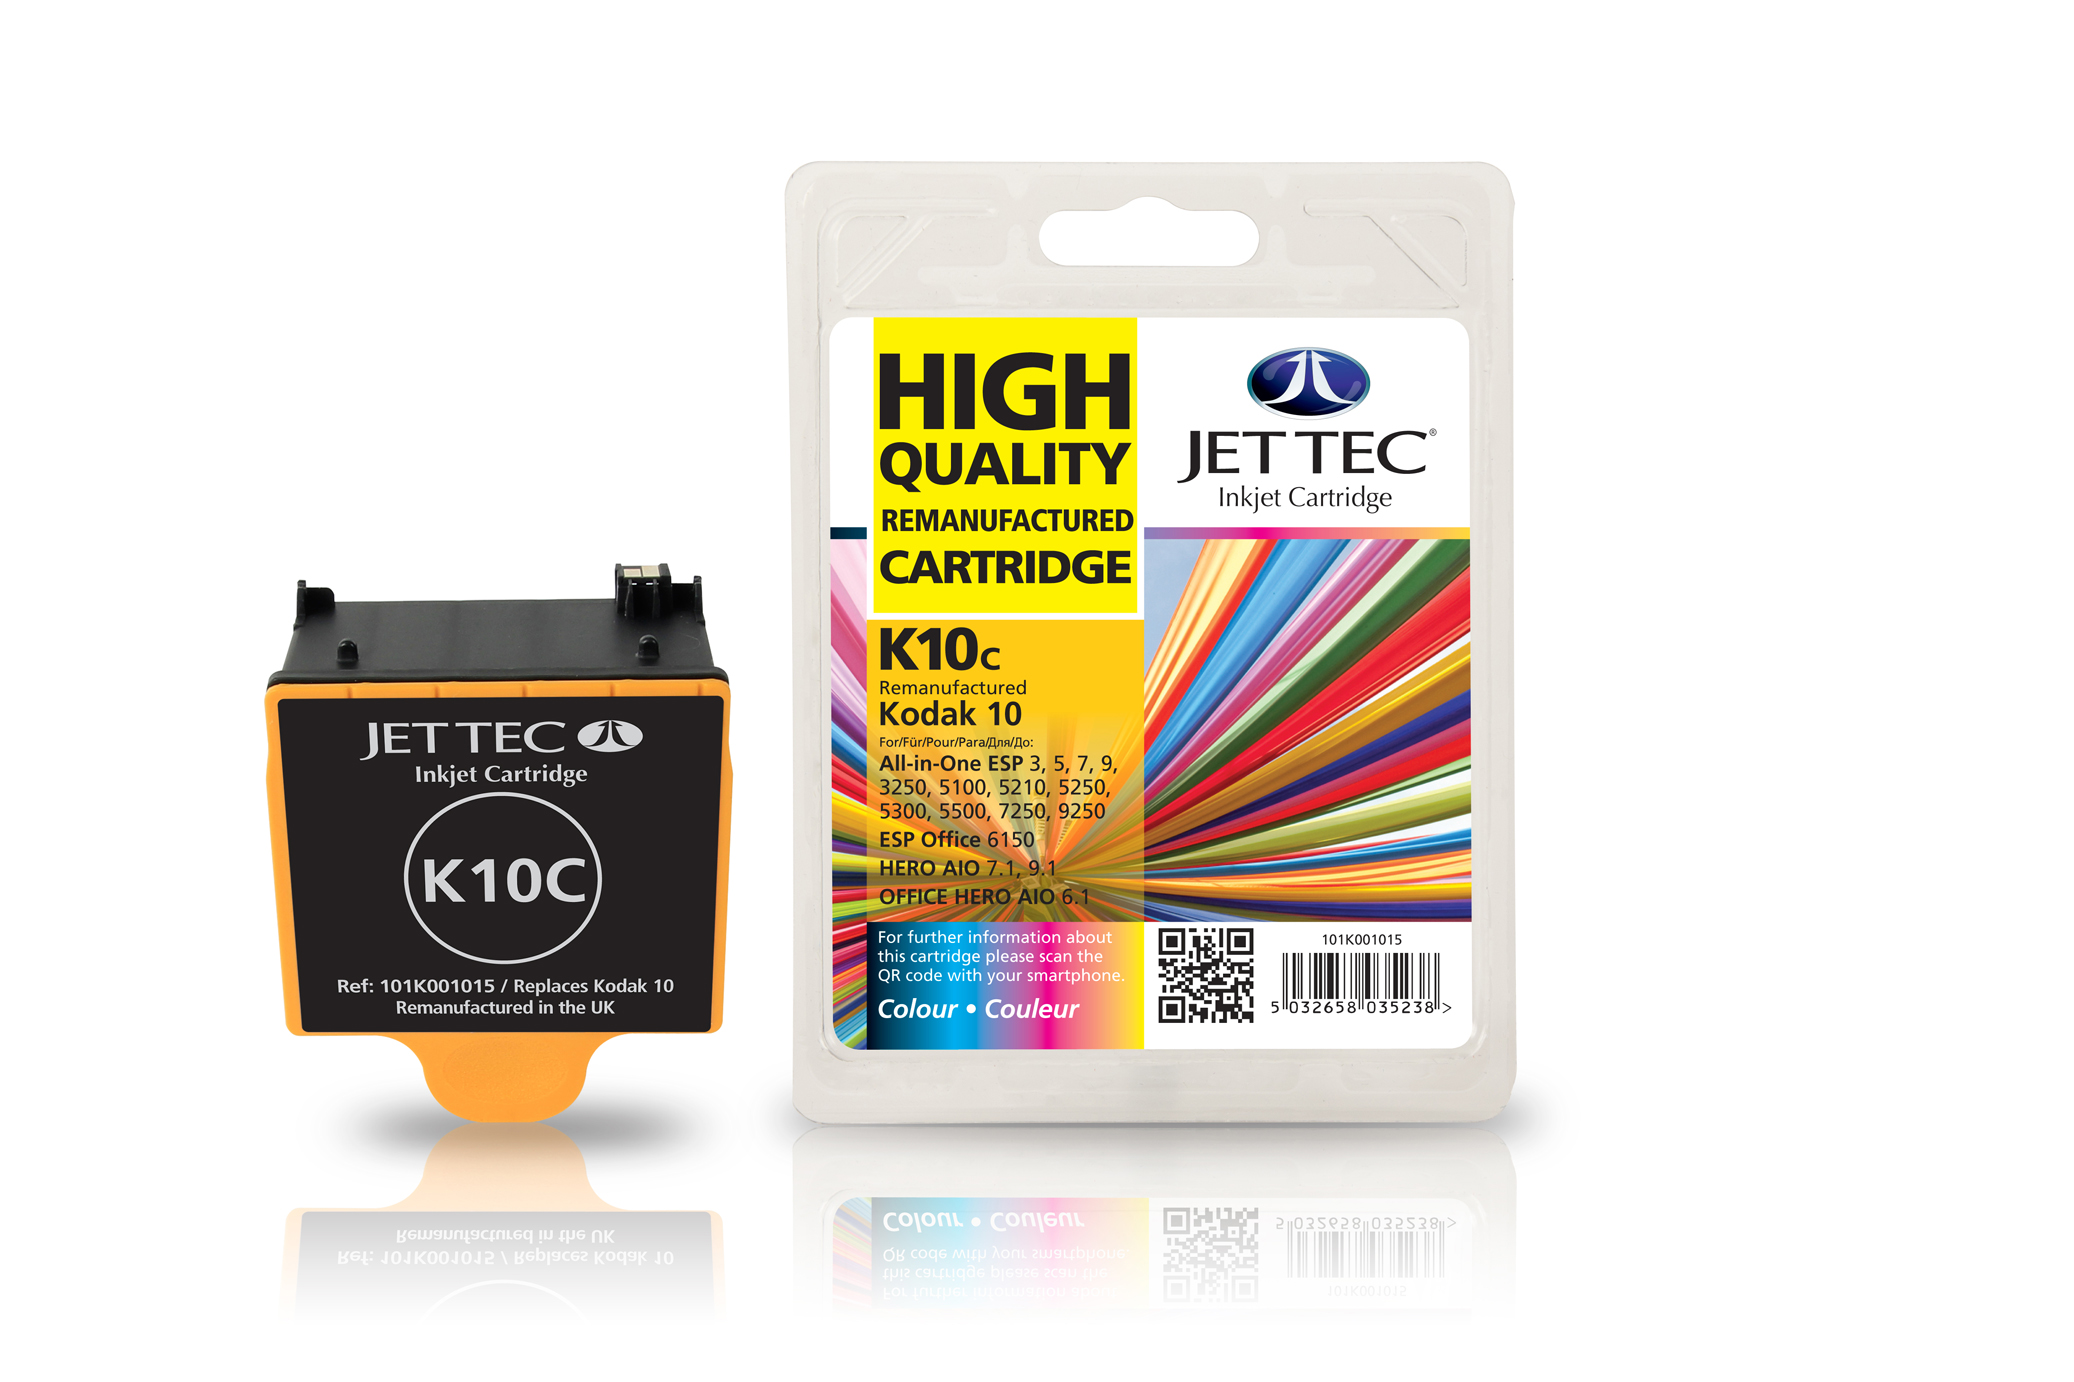 Jet Tec K10C remanufactured Kodak 10 colour inkjet printer cartridges